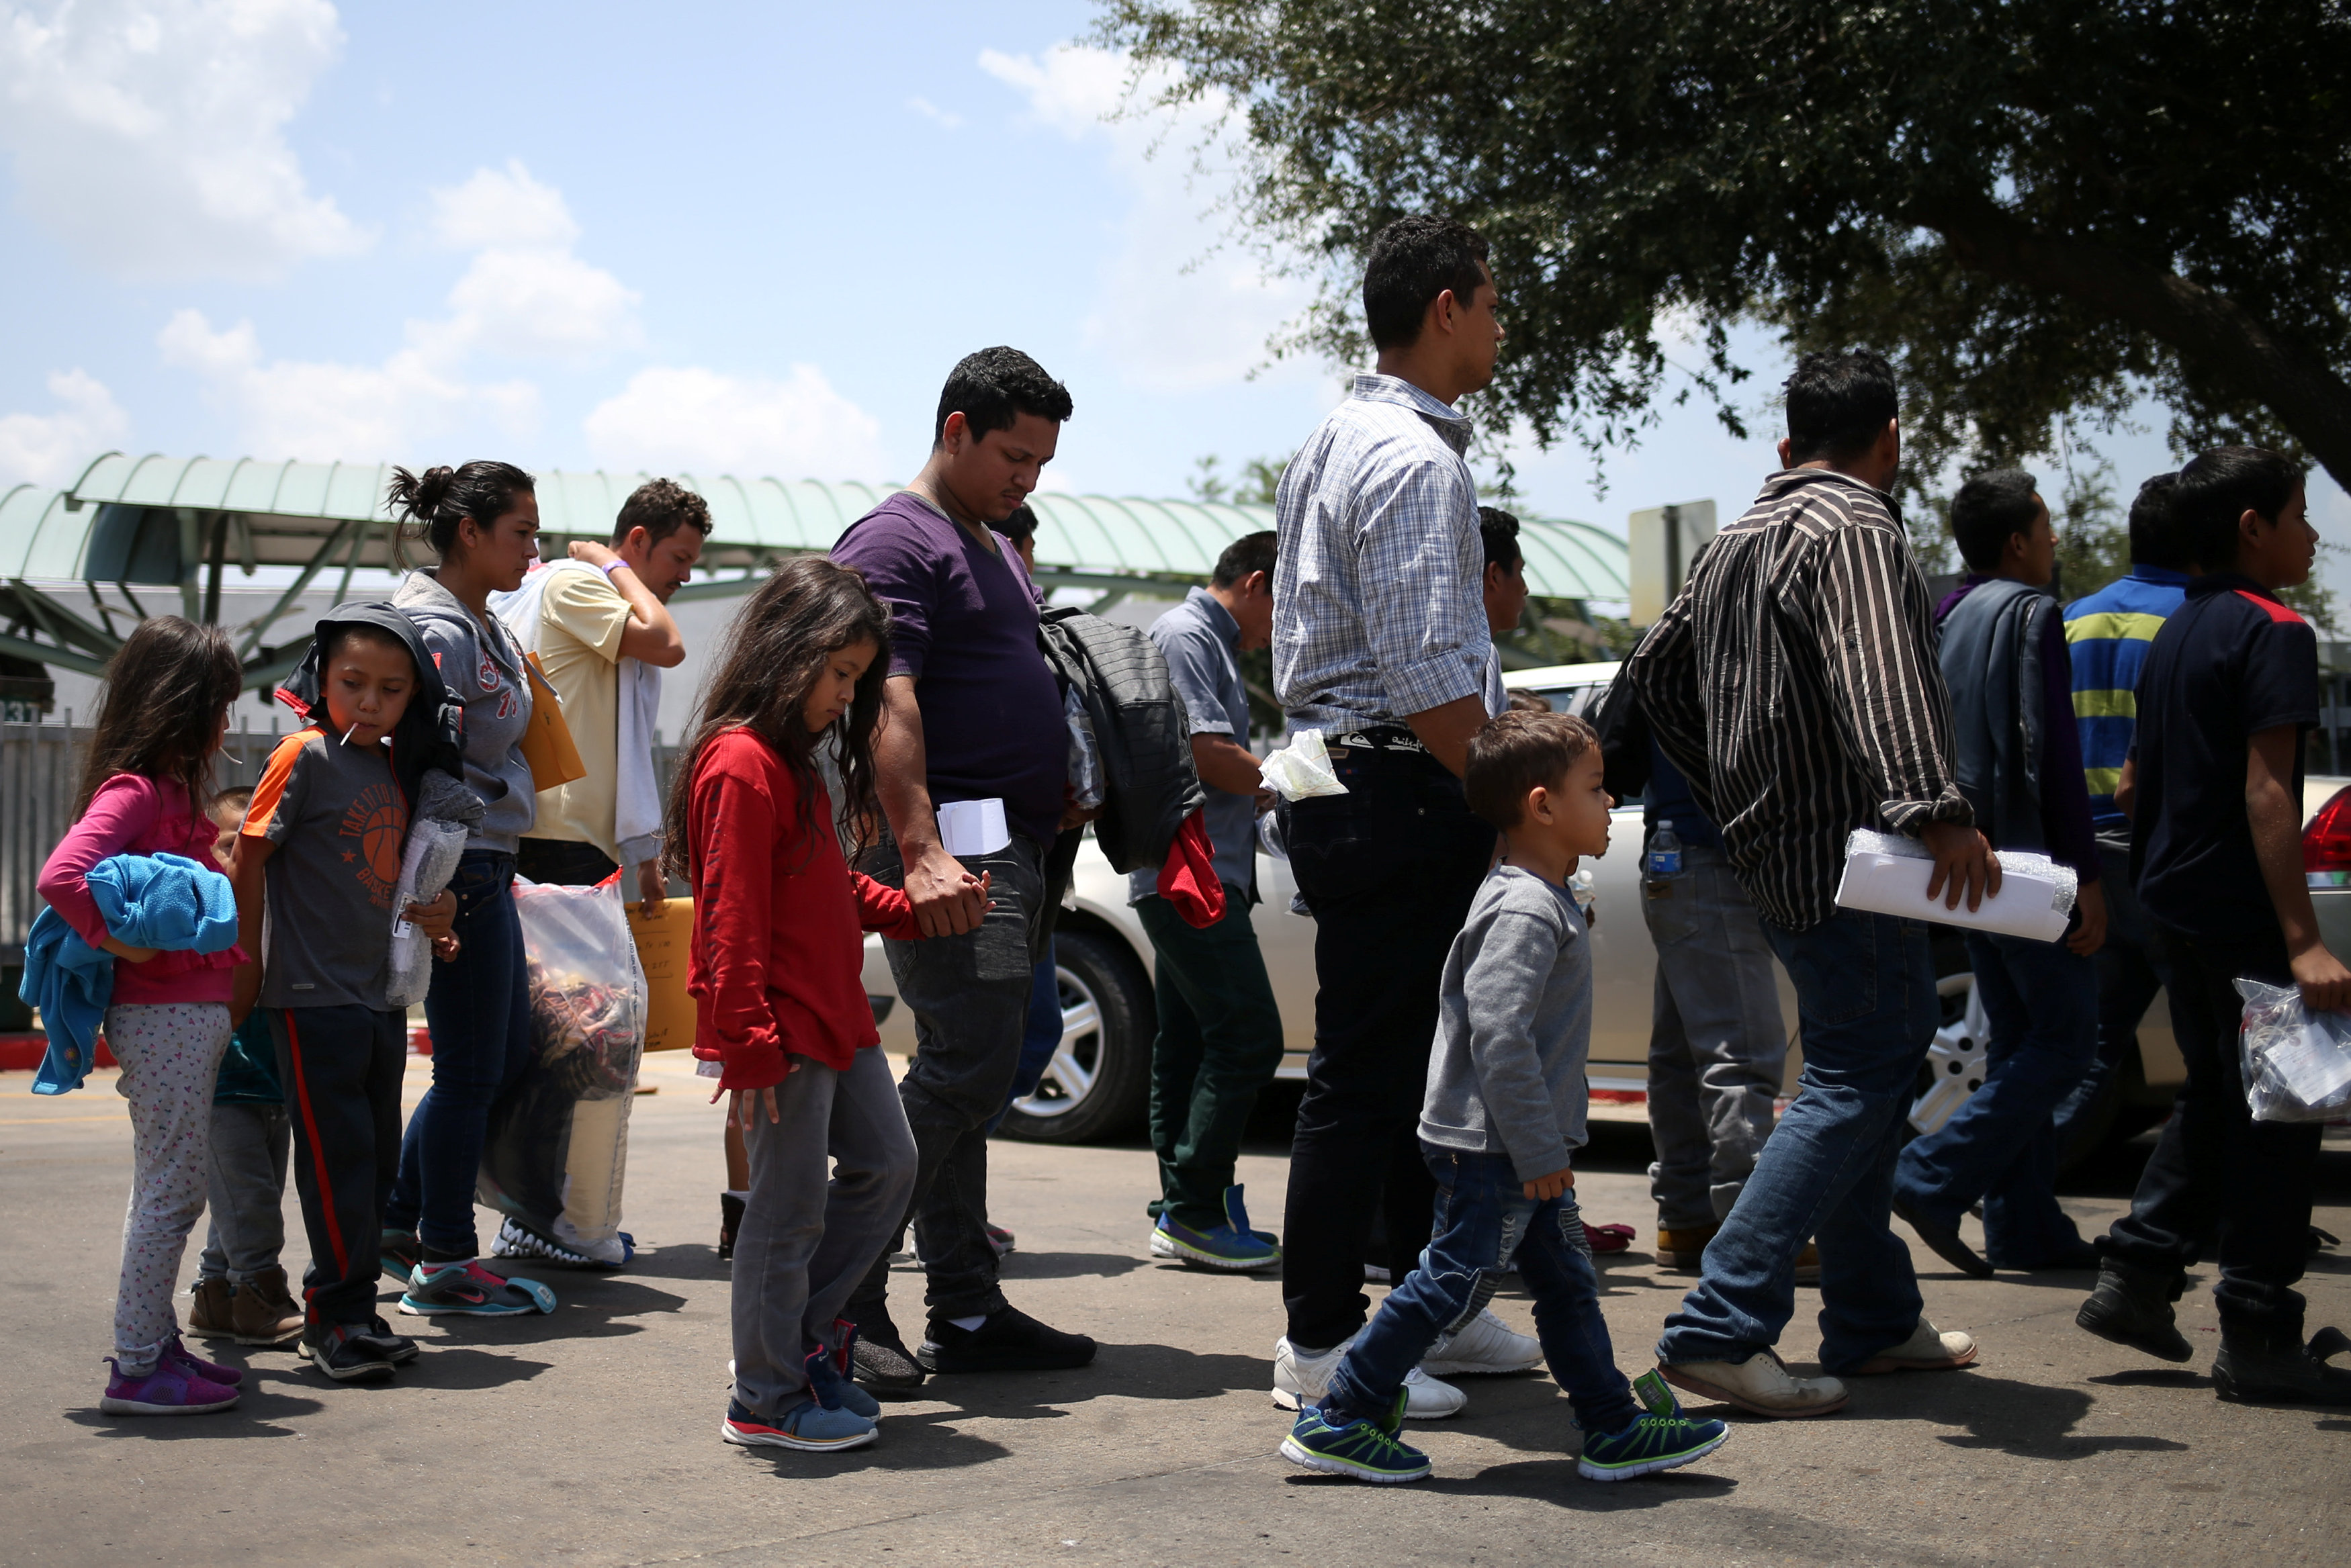 FILE PHOTO - Undocumented immigrant families walk from a bus depot to a respite center after being released from detention in McAllen, Texas, U.S., July 26, 2018. REUTERS/Loren Elliott